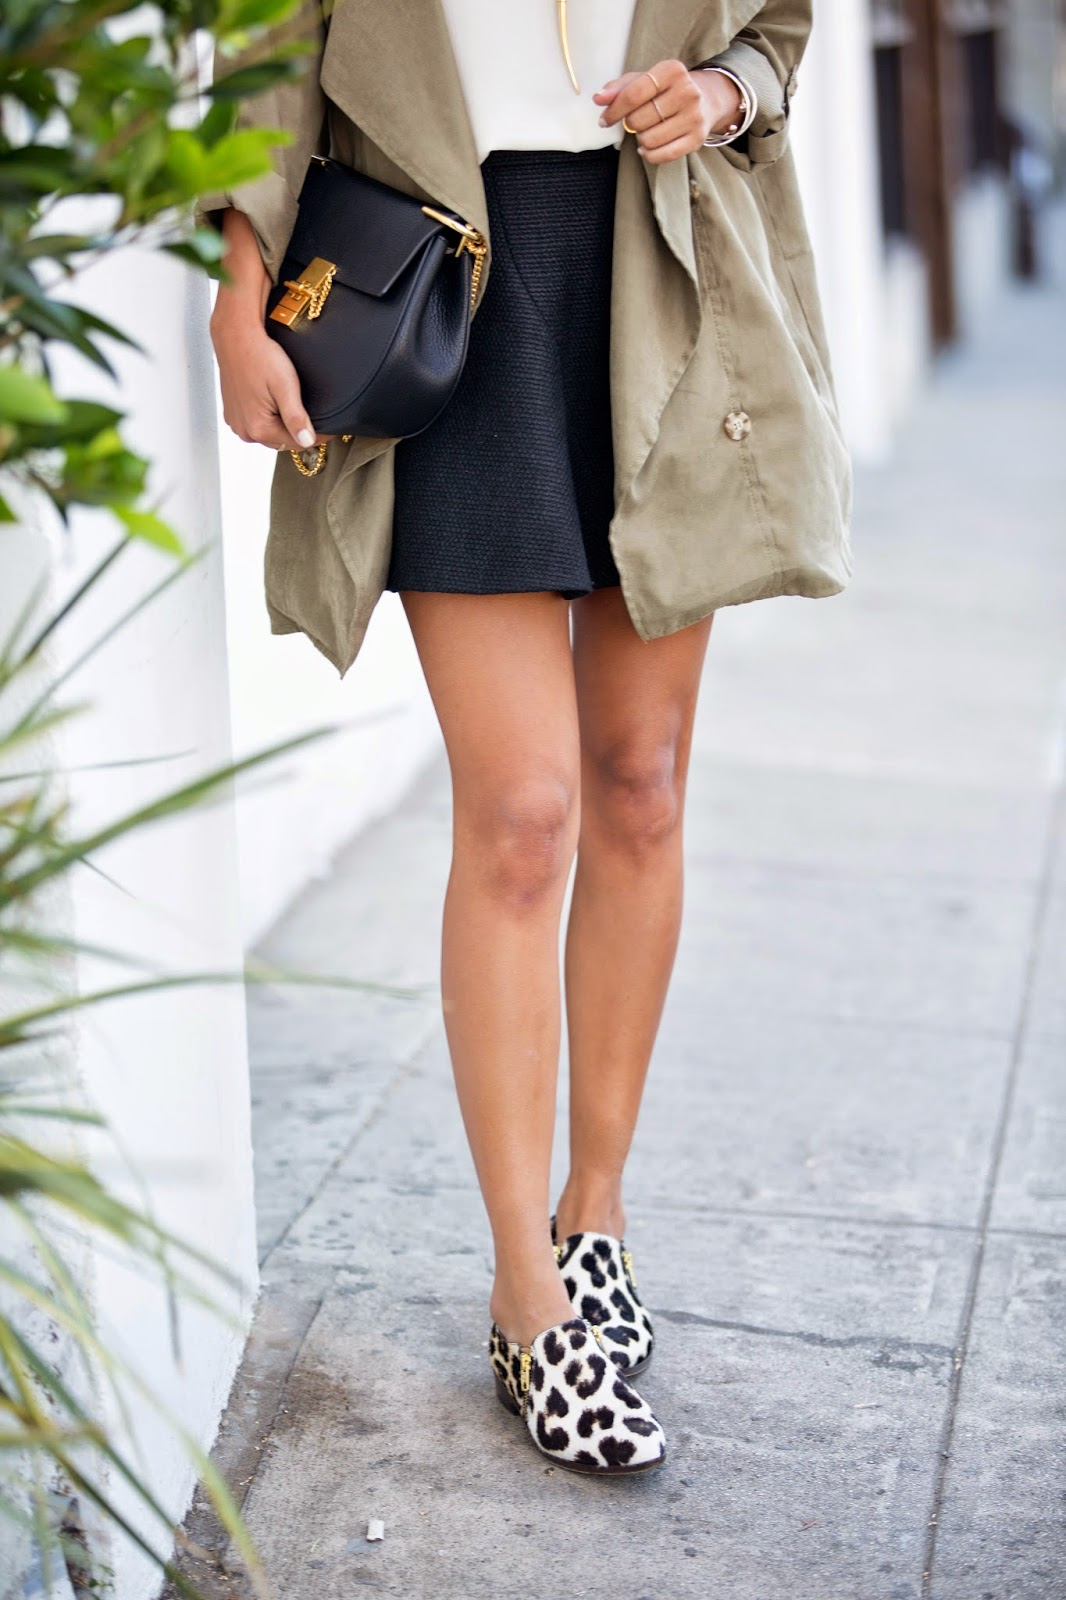 weekend outfit, chloe drew bag, jcrew flats, how to wear leopard shoes, spring outfit